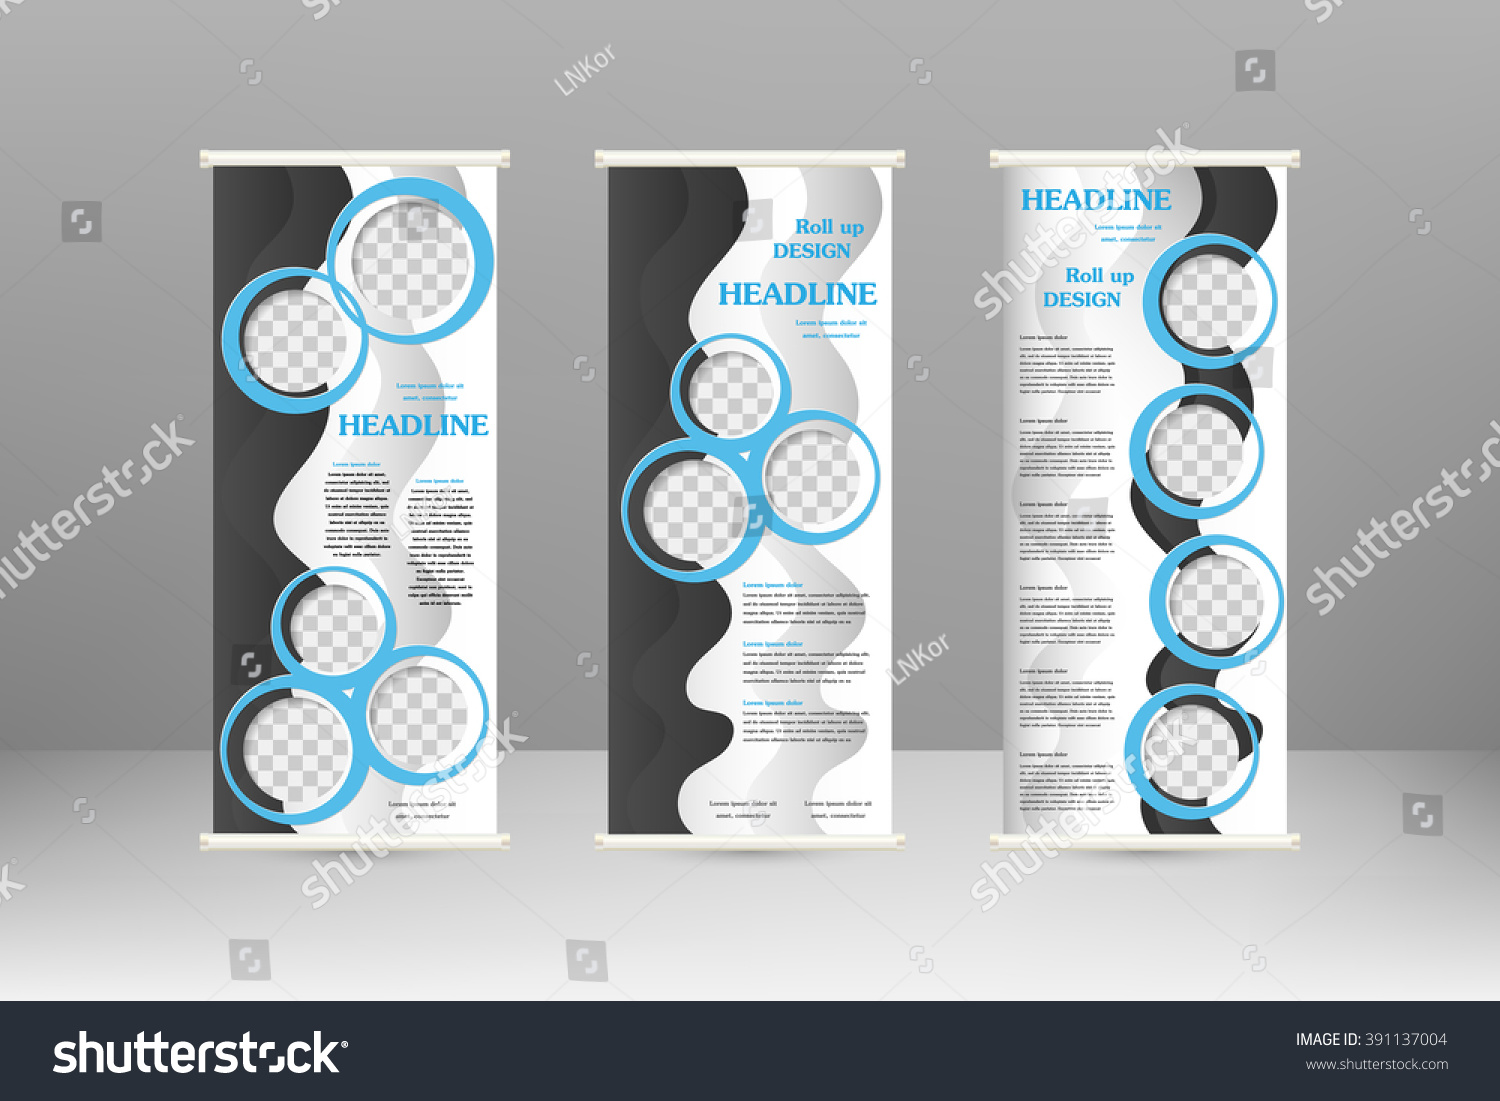 Roll Banner Stand Design Advertisement Poster Stock Vector ...